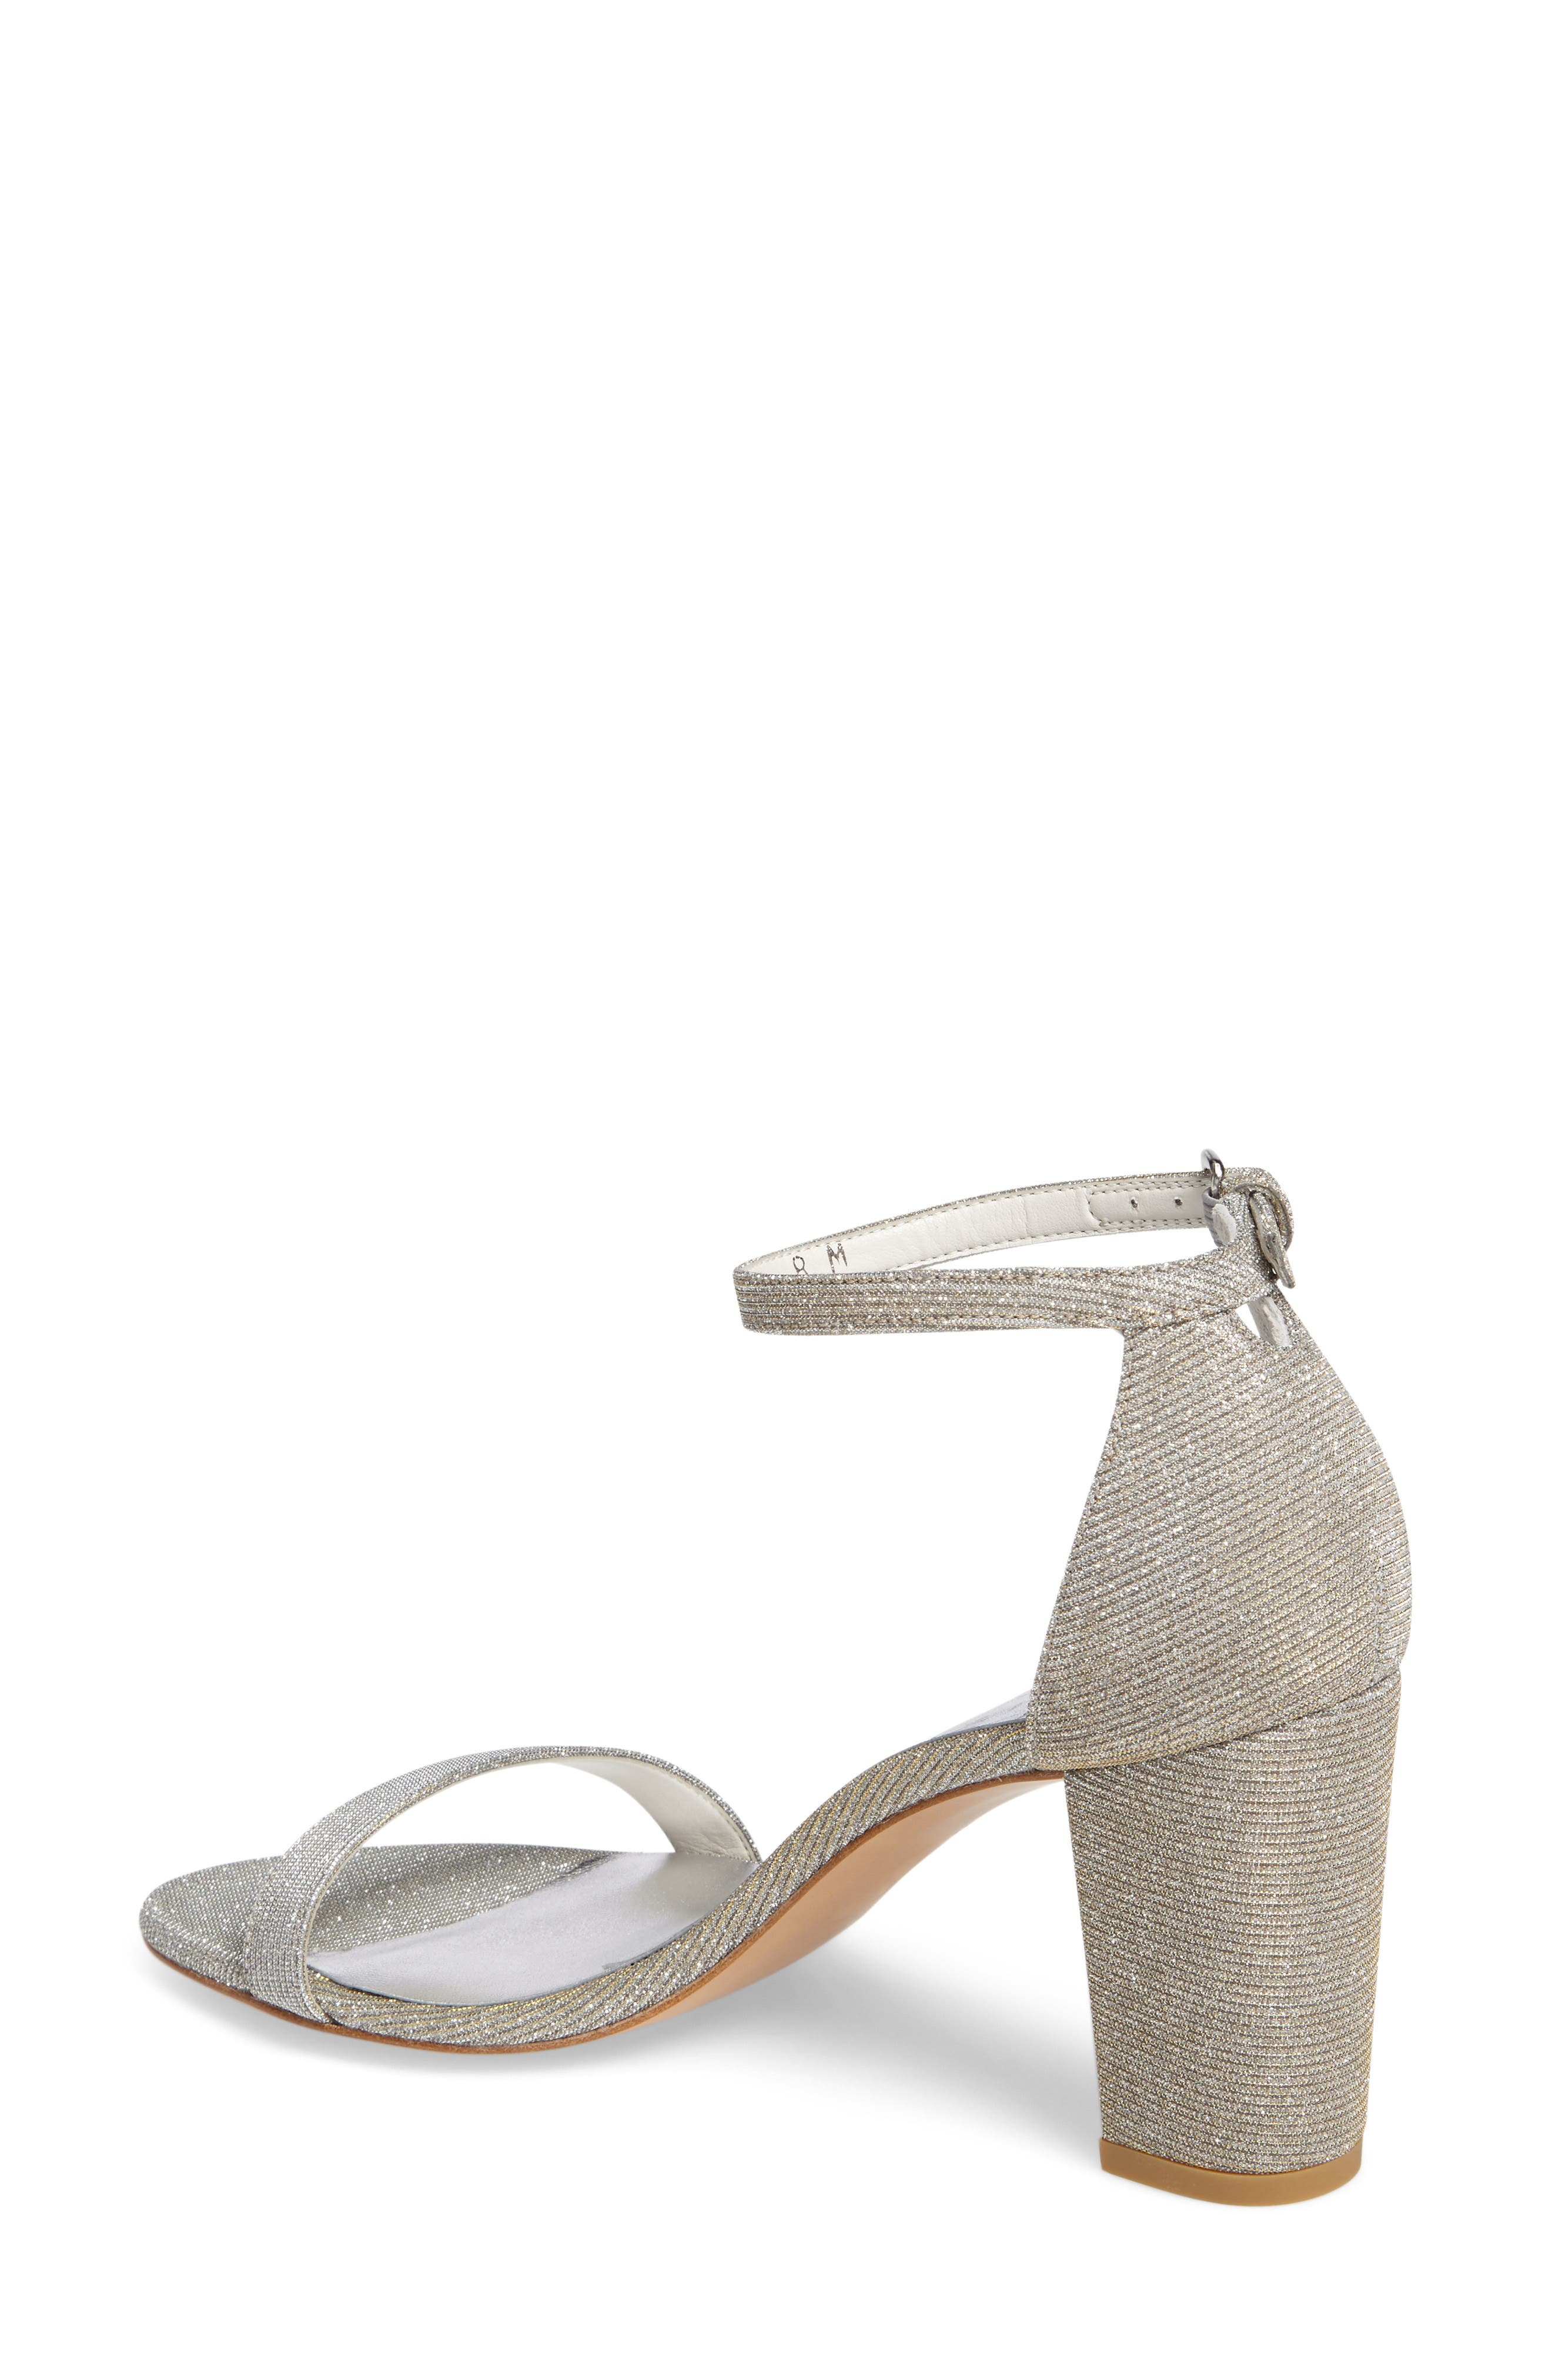 NearlyNude Ankle Strap Sandal,                             Alternate thumbnail 41, color,